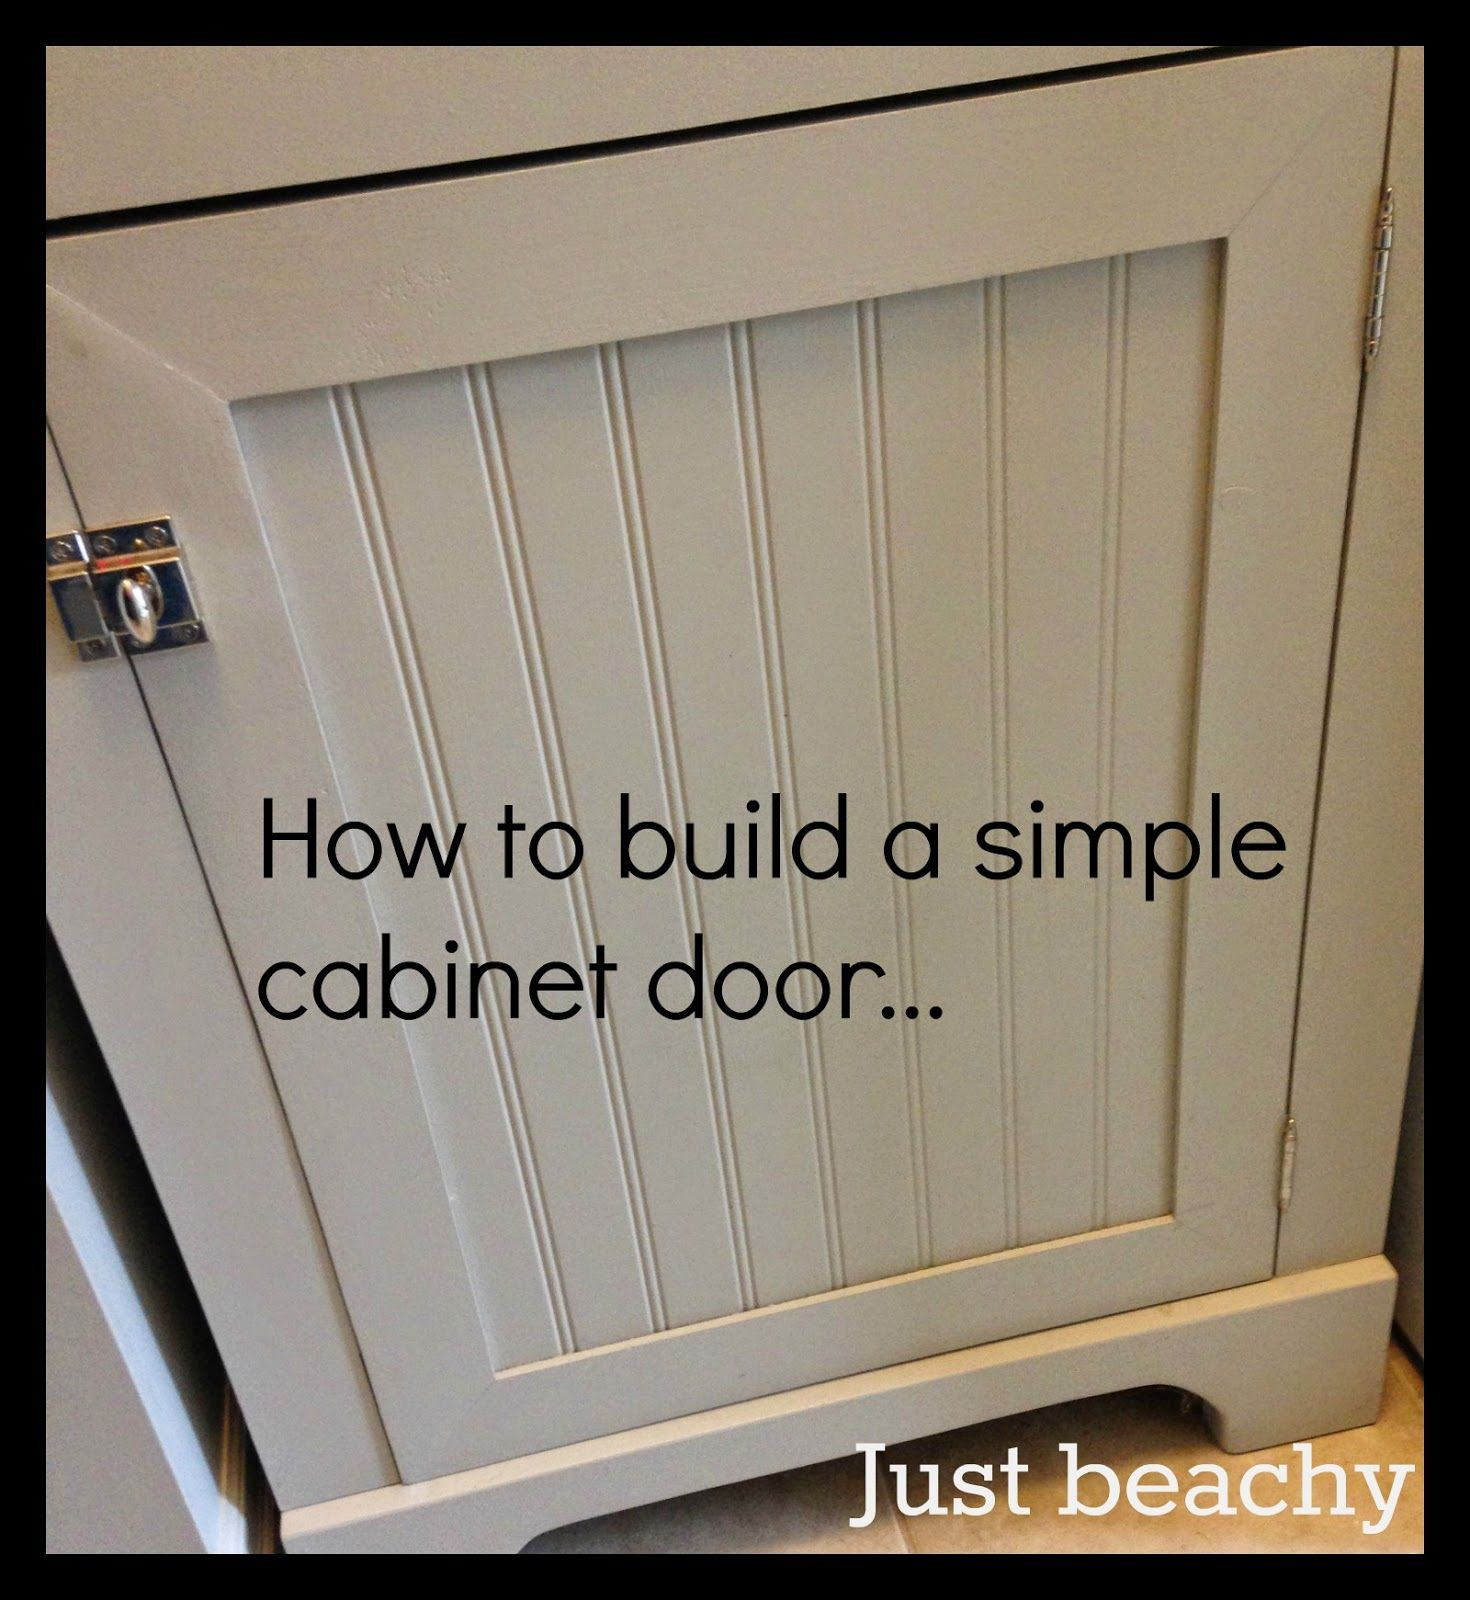 Diy tutorial how to build simple shaker style cabinet for Building kitchen cabinets in place